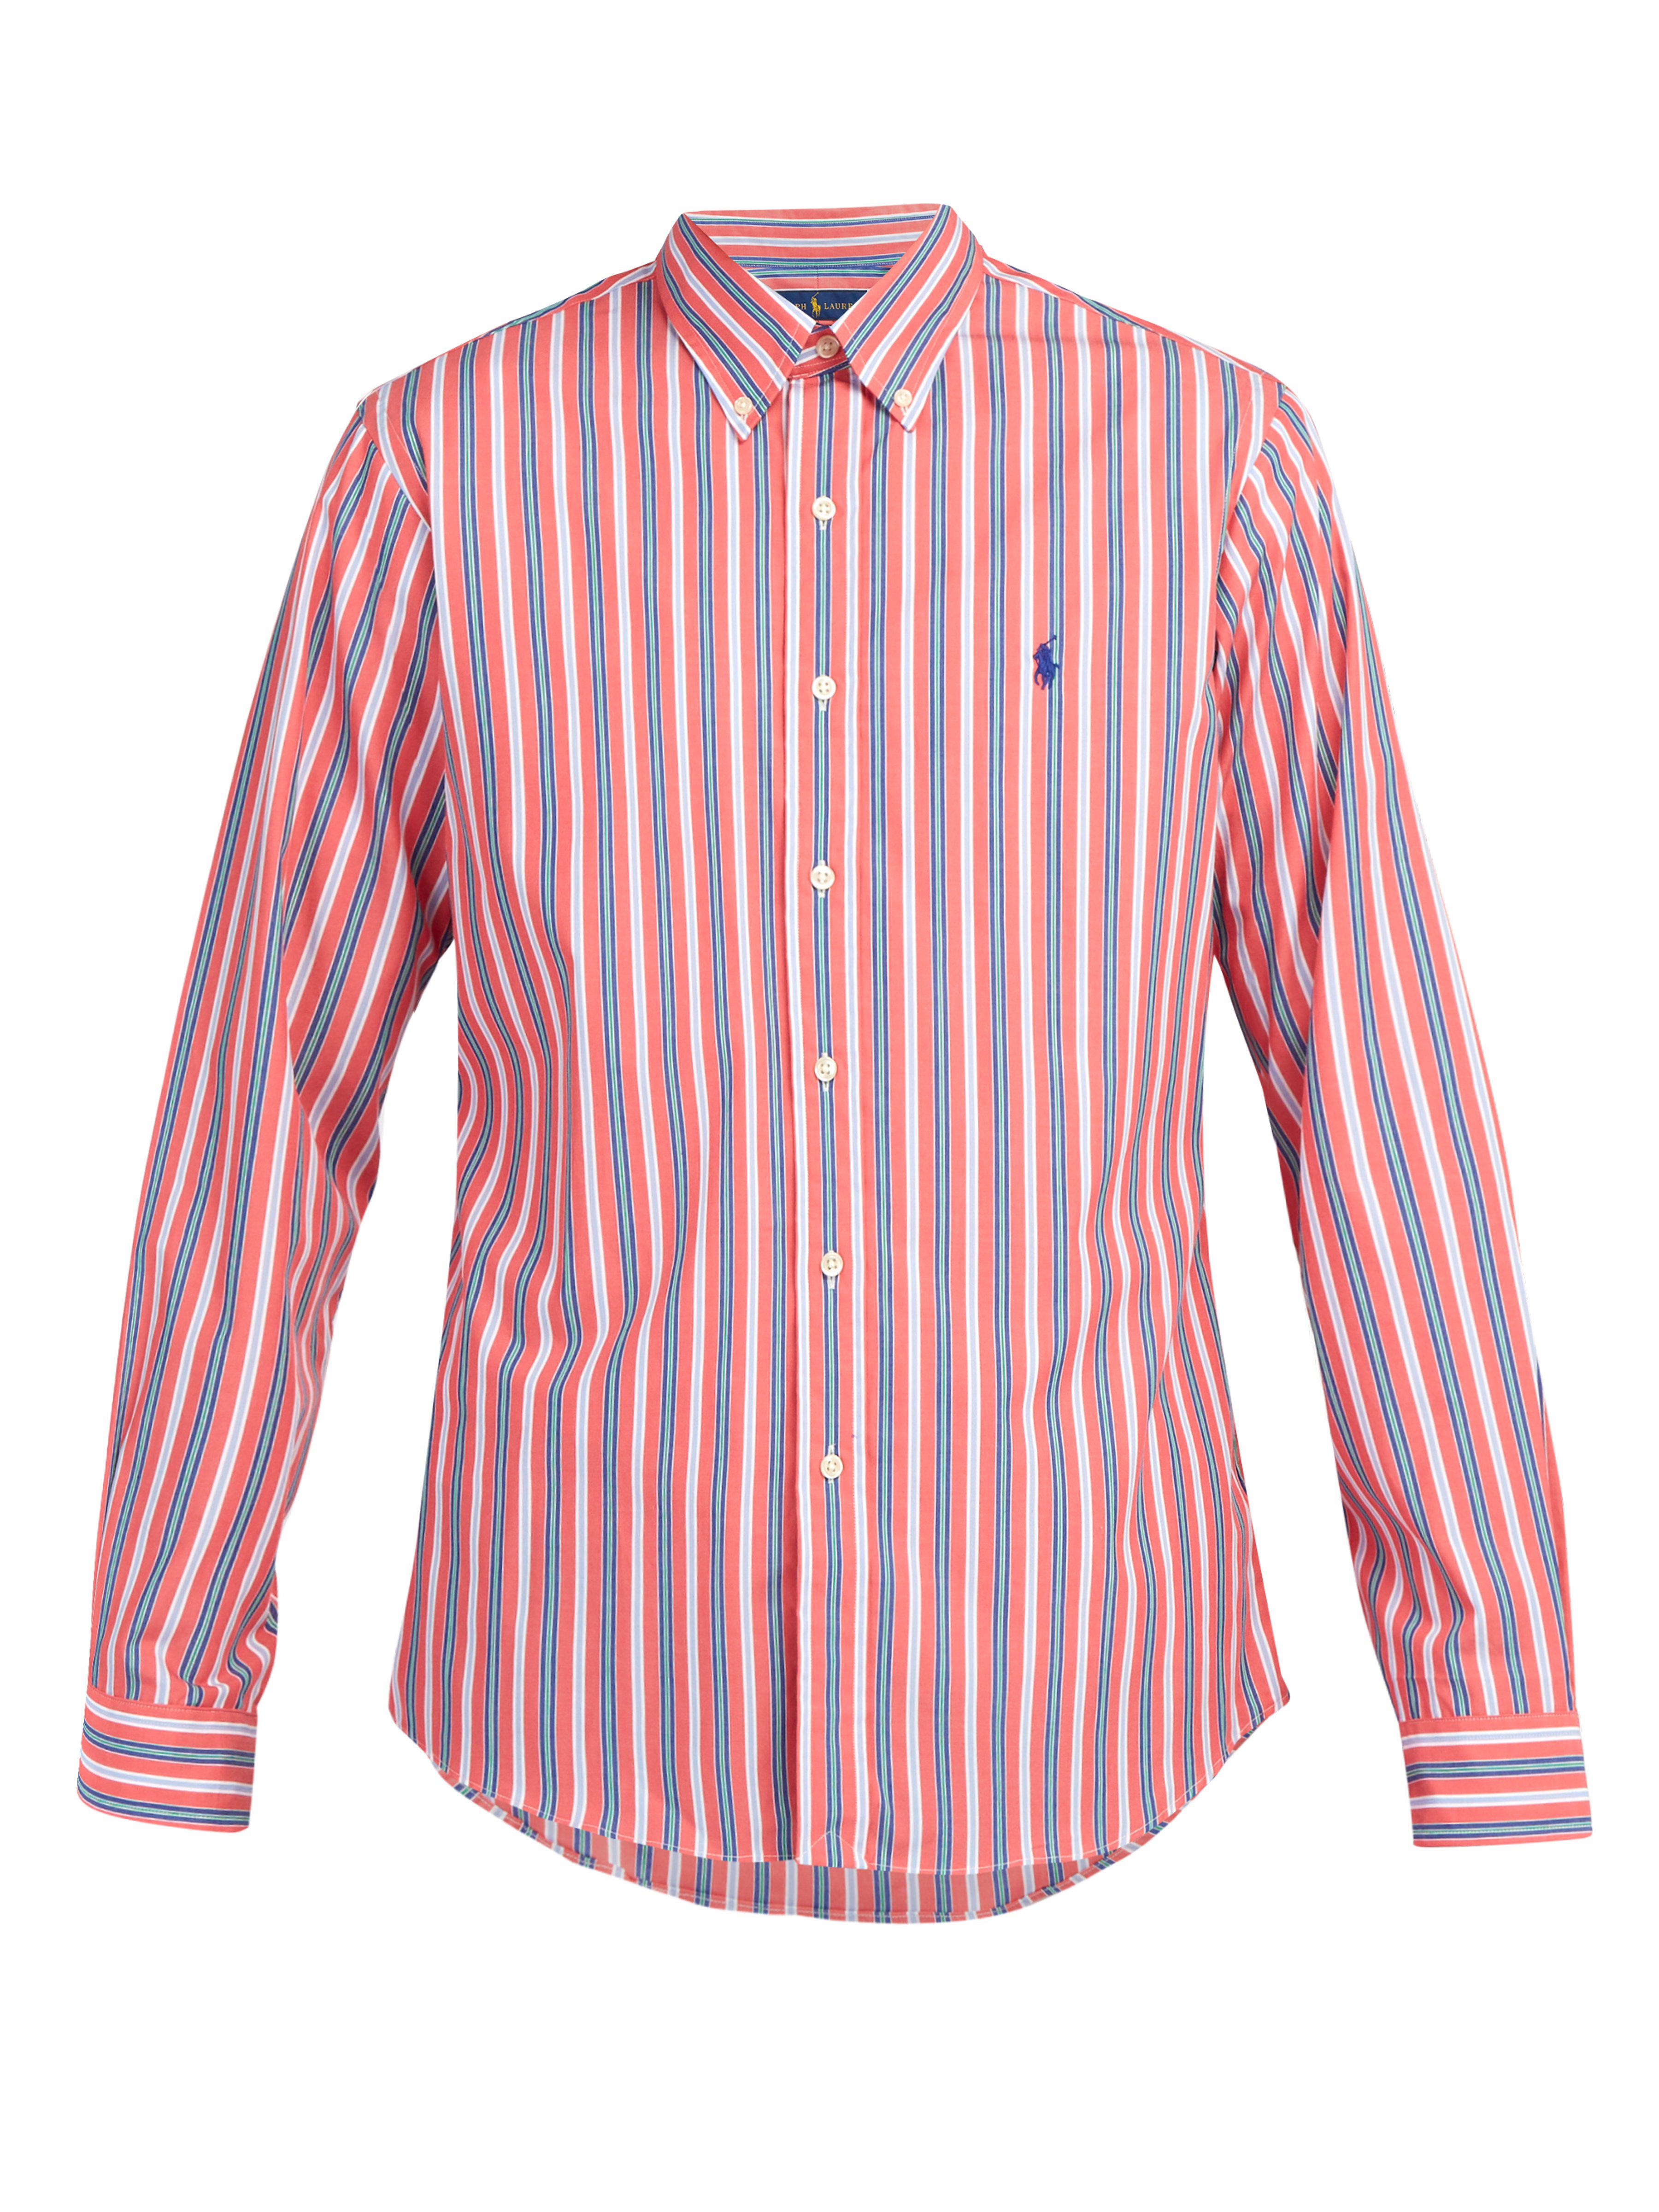 c1a52b389c74e Polo Ralph Lauren Slim Fit Striped Cotton Poplin Shirt in Red for ...